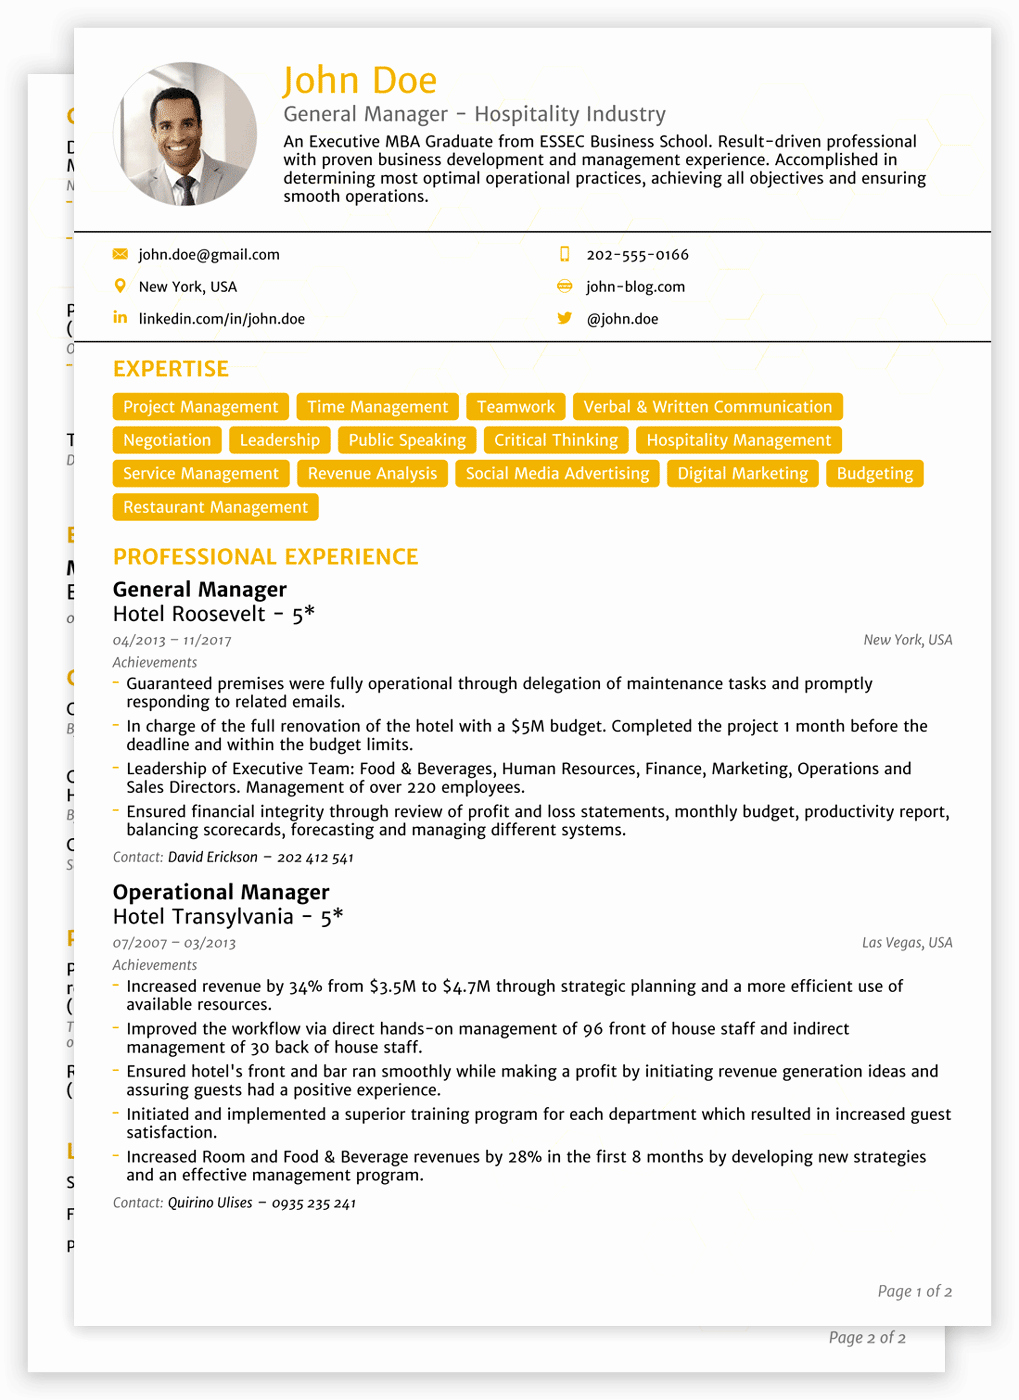 Sample Academic Curriculum Vitae Lovely 8 Cv Templates for 2019 1 Edit & Download